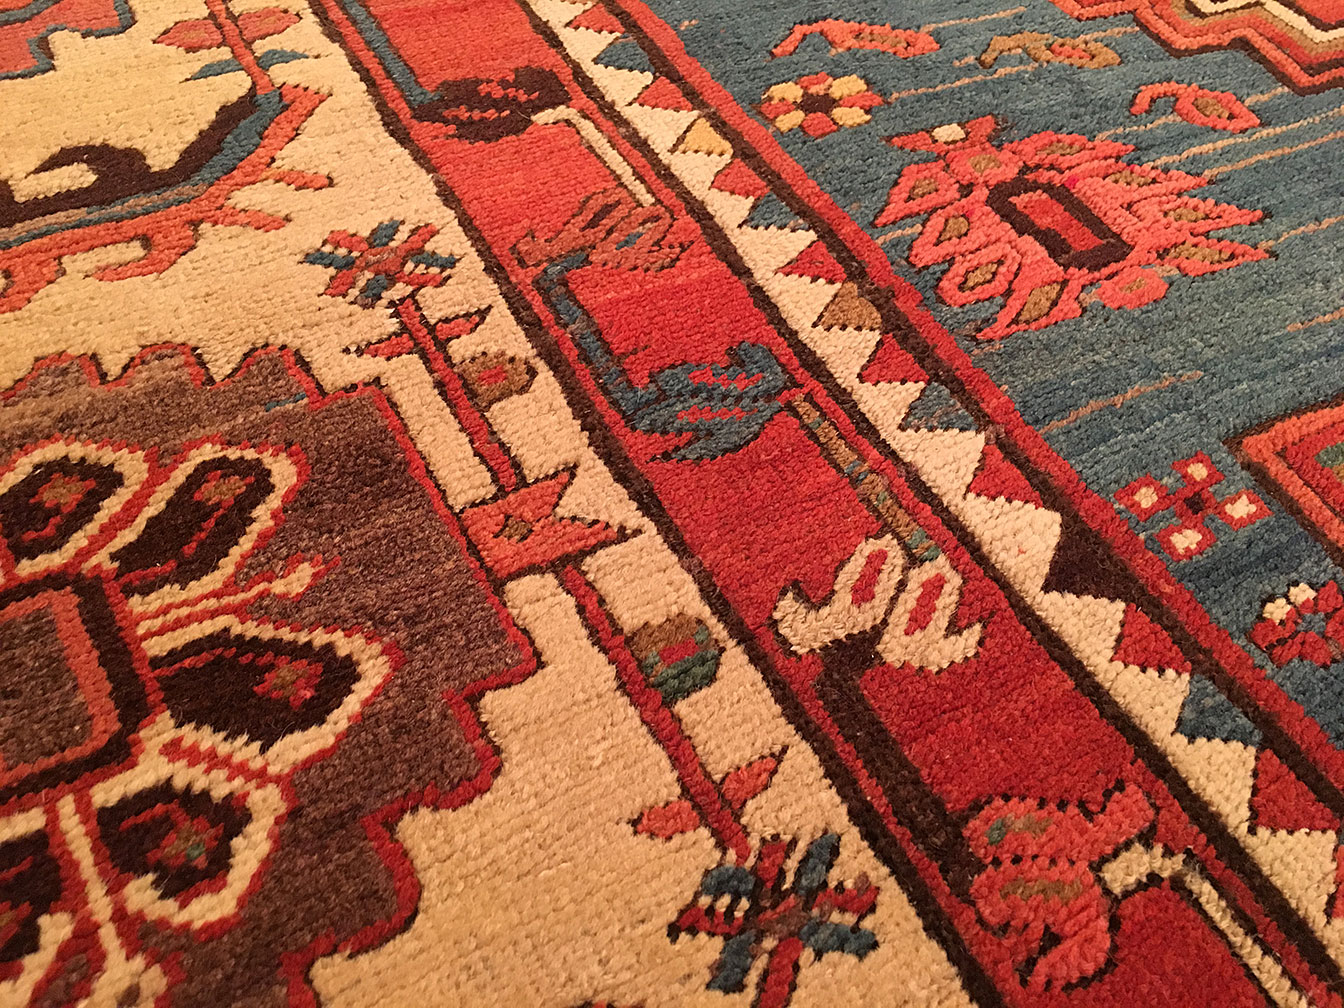 Antique bakshaish Carpet - # 52981